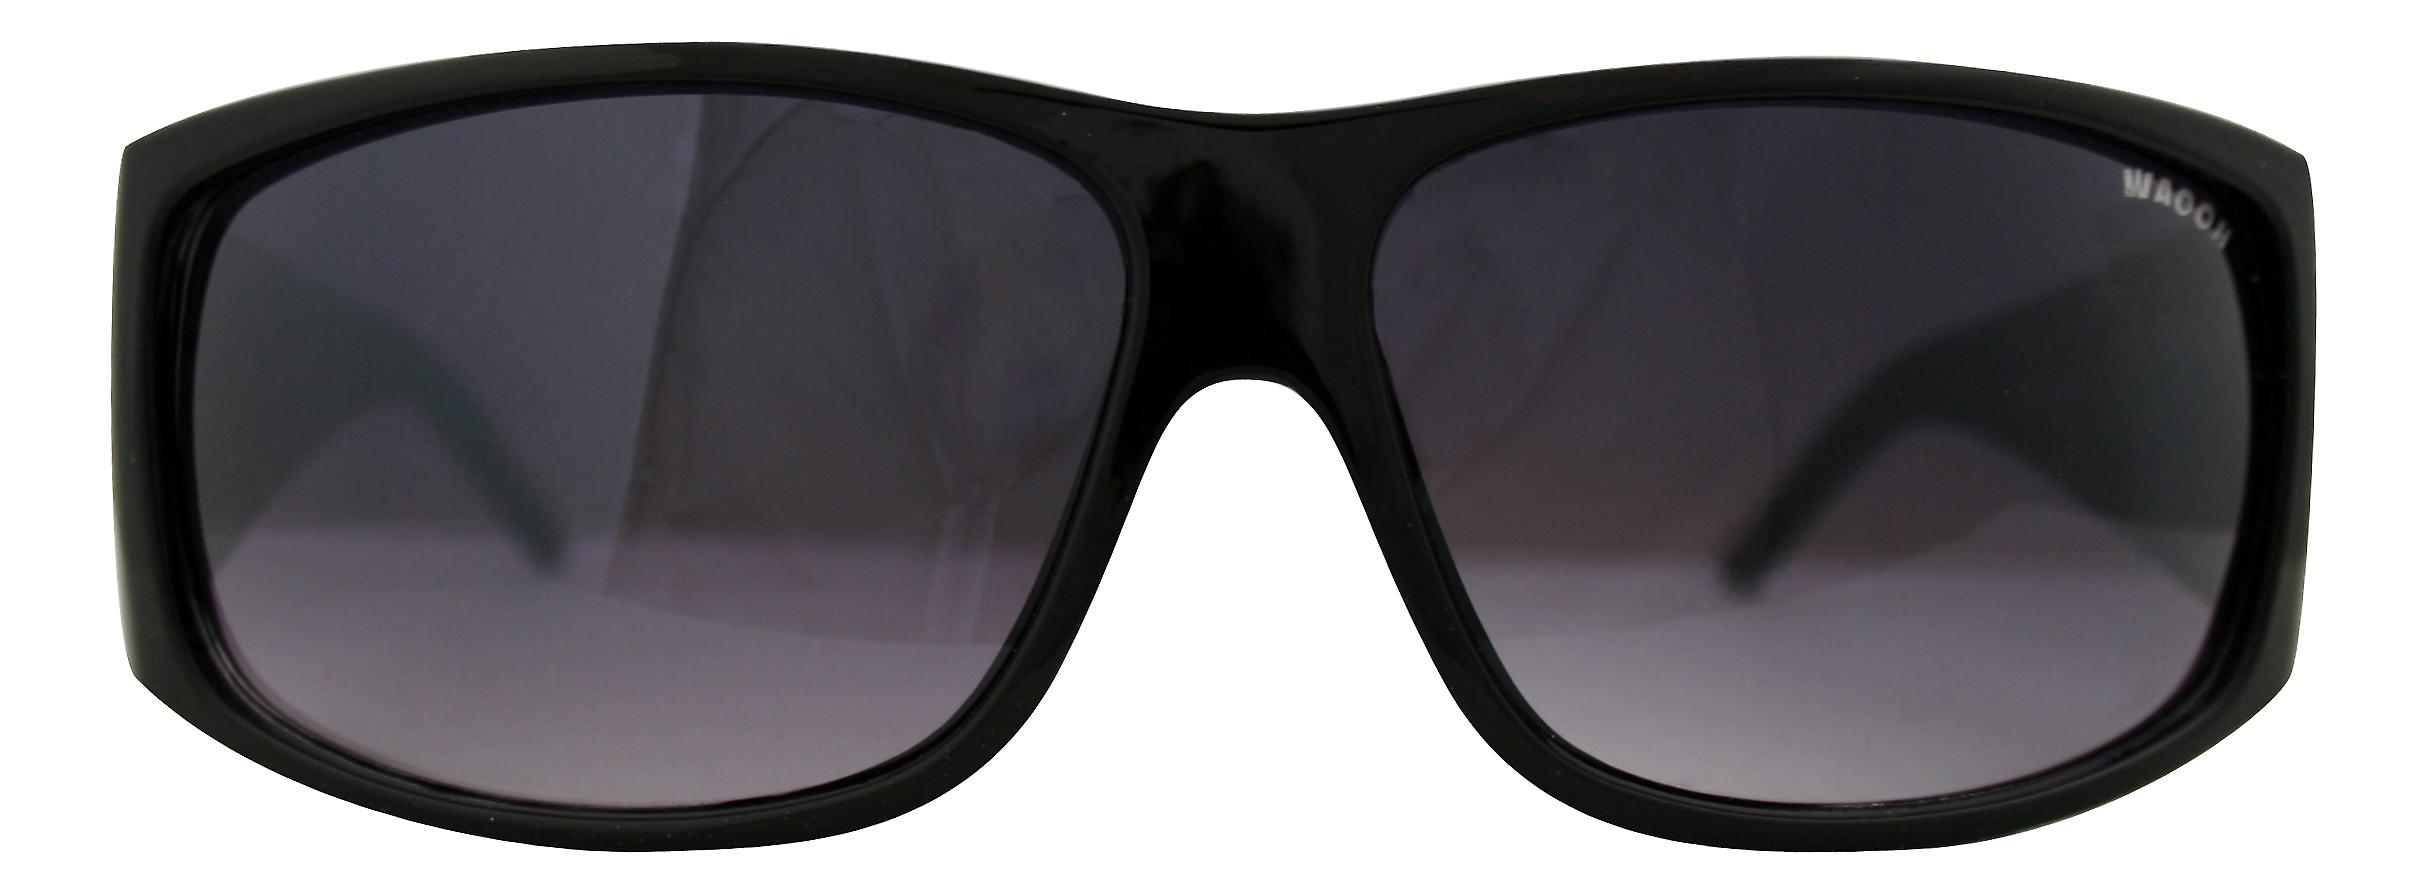 Waooh - sun glasses are TS834 - Alien Design - Protection UV400 Category 3 - Sunglasses